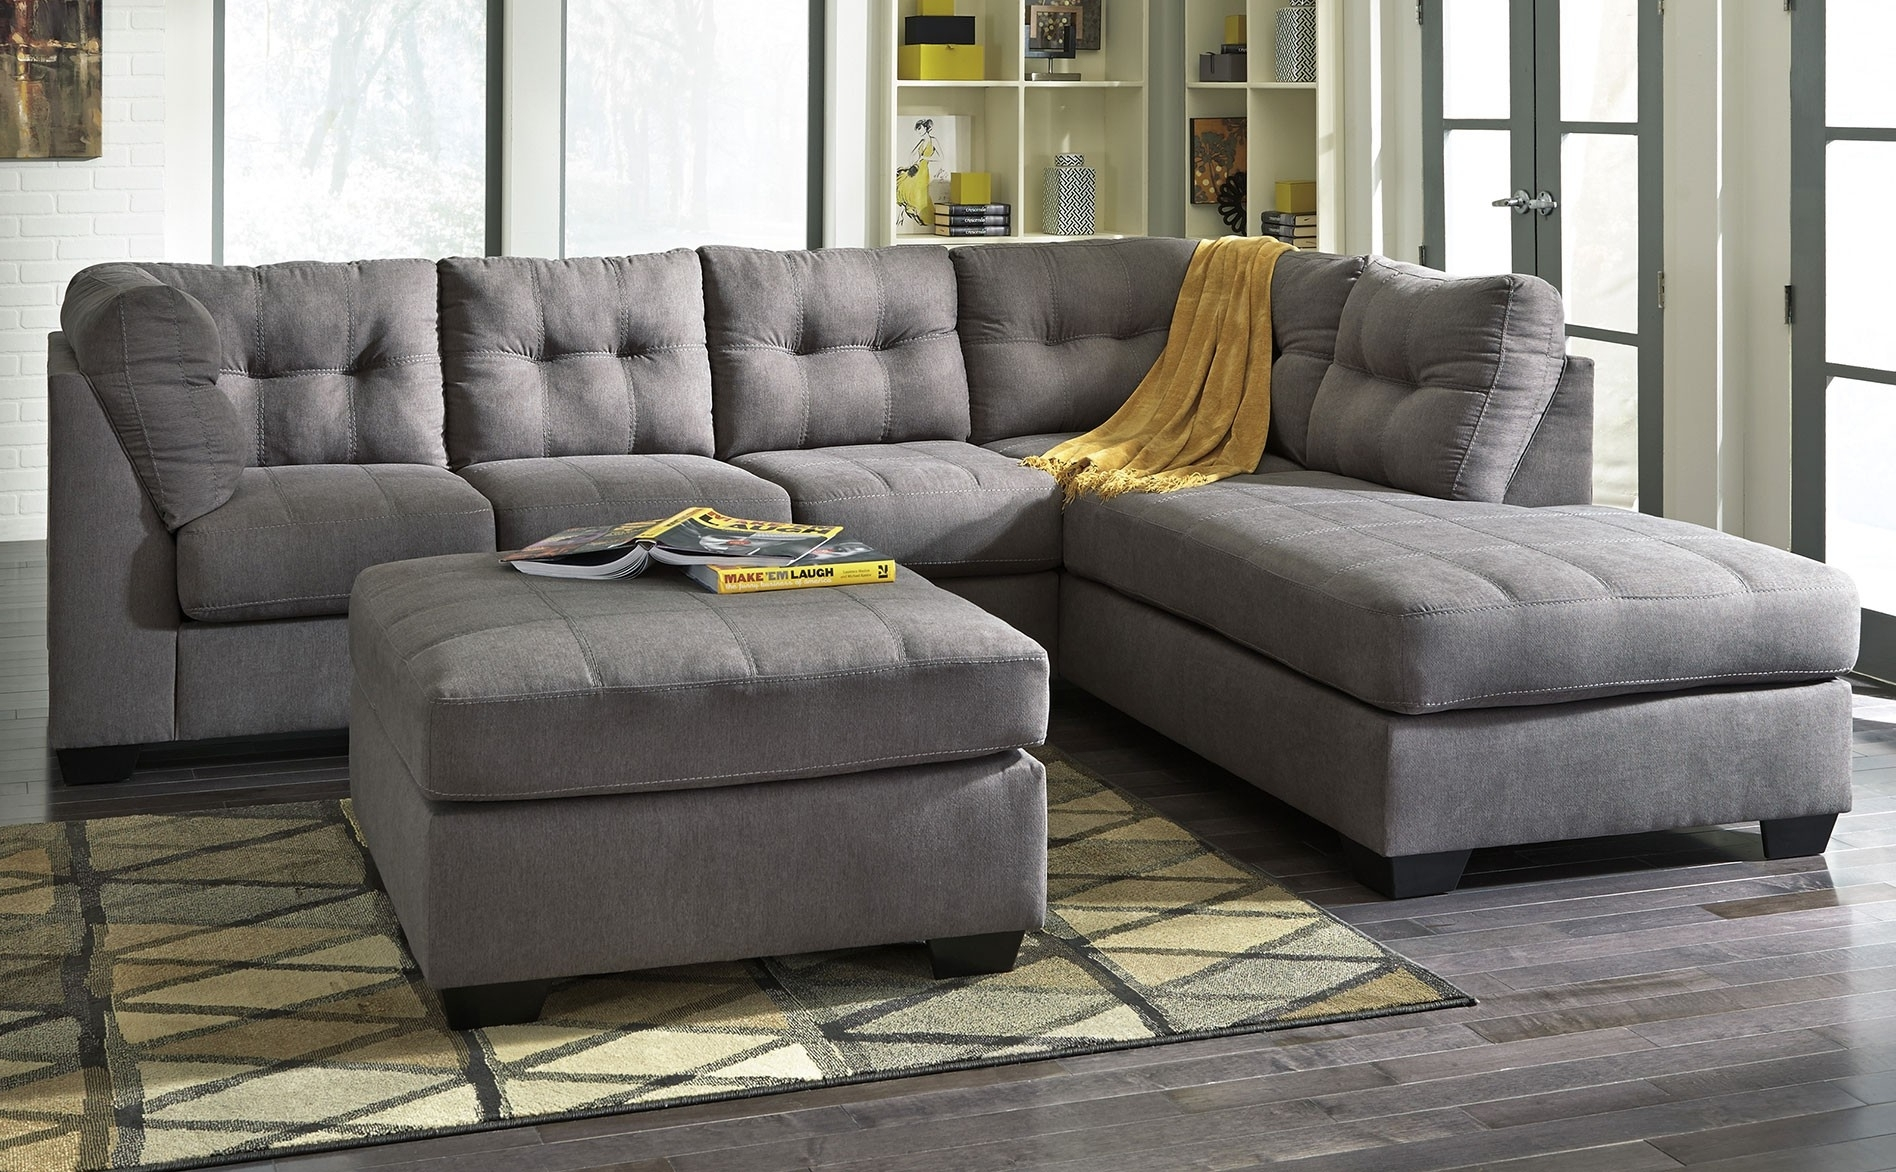 Most Recently Released Sectional Sofas Under 500 Throughout Sofa : Leather Couch Under 500 Sectionals Under 400 Room Couch (View 14 of 15)